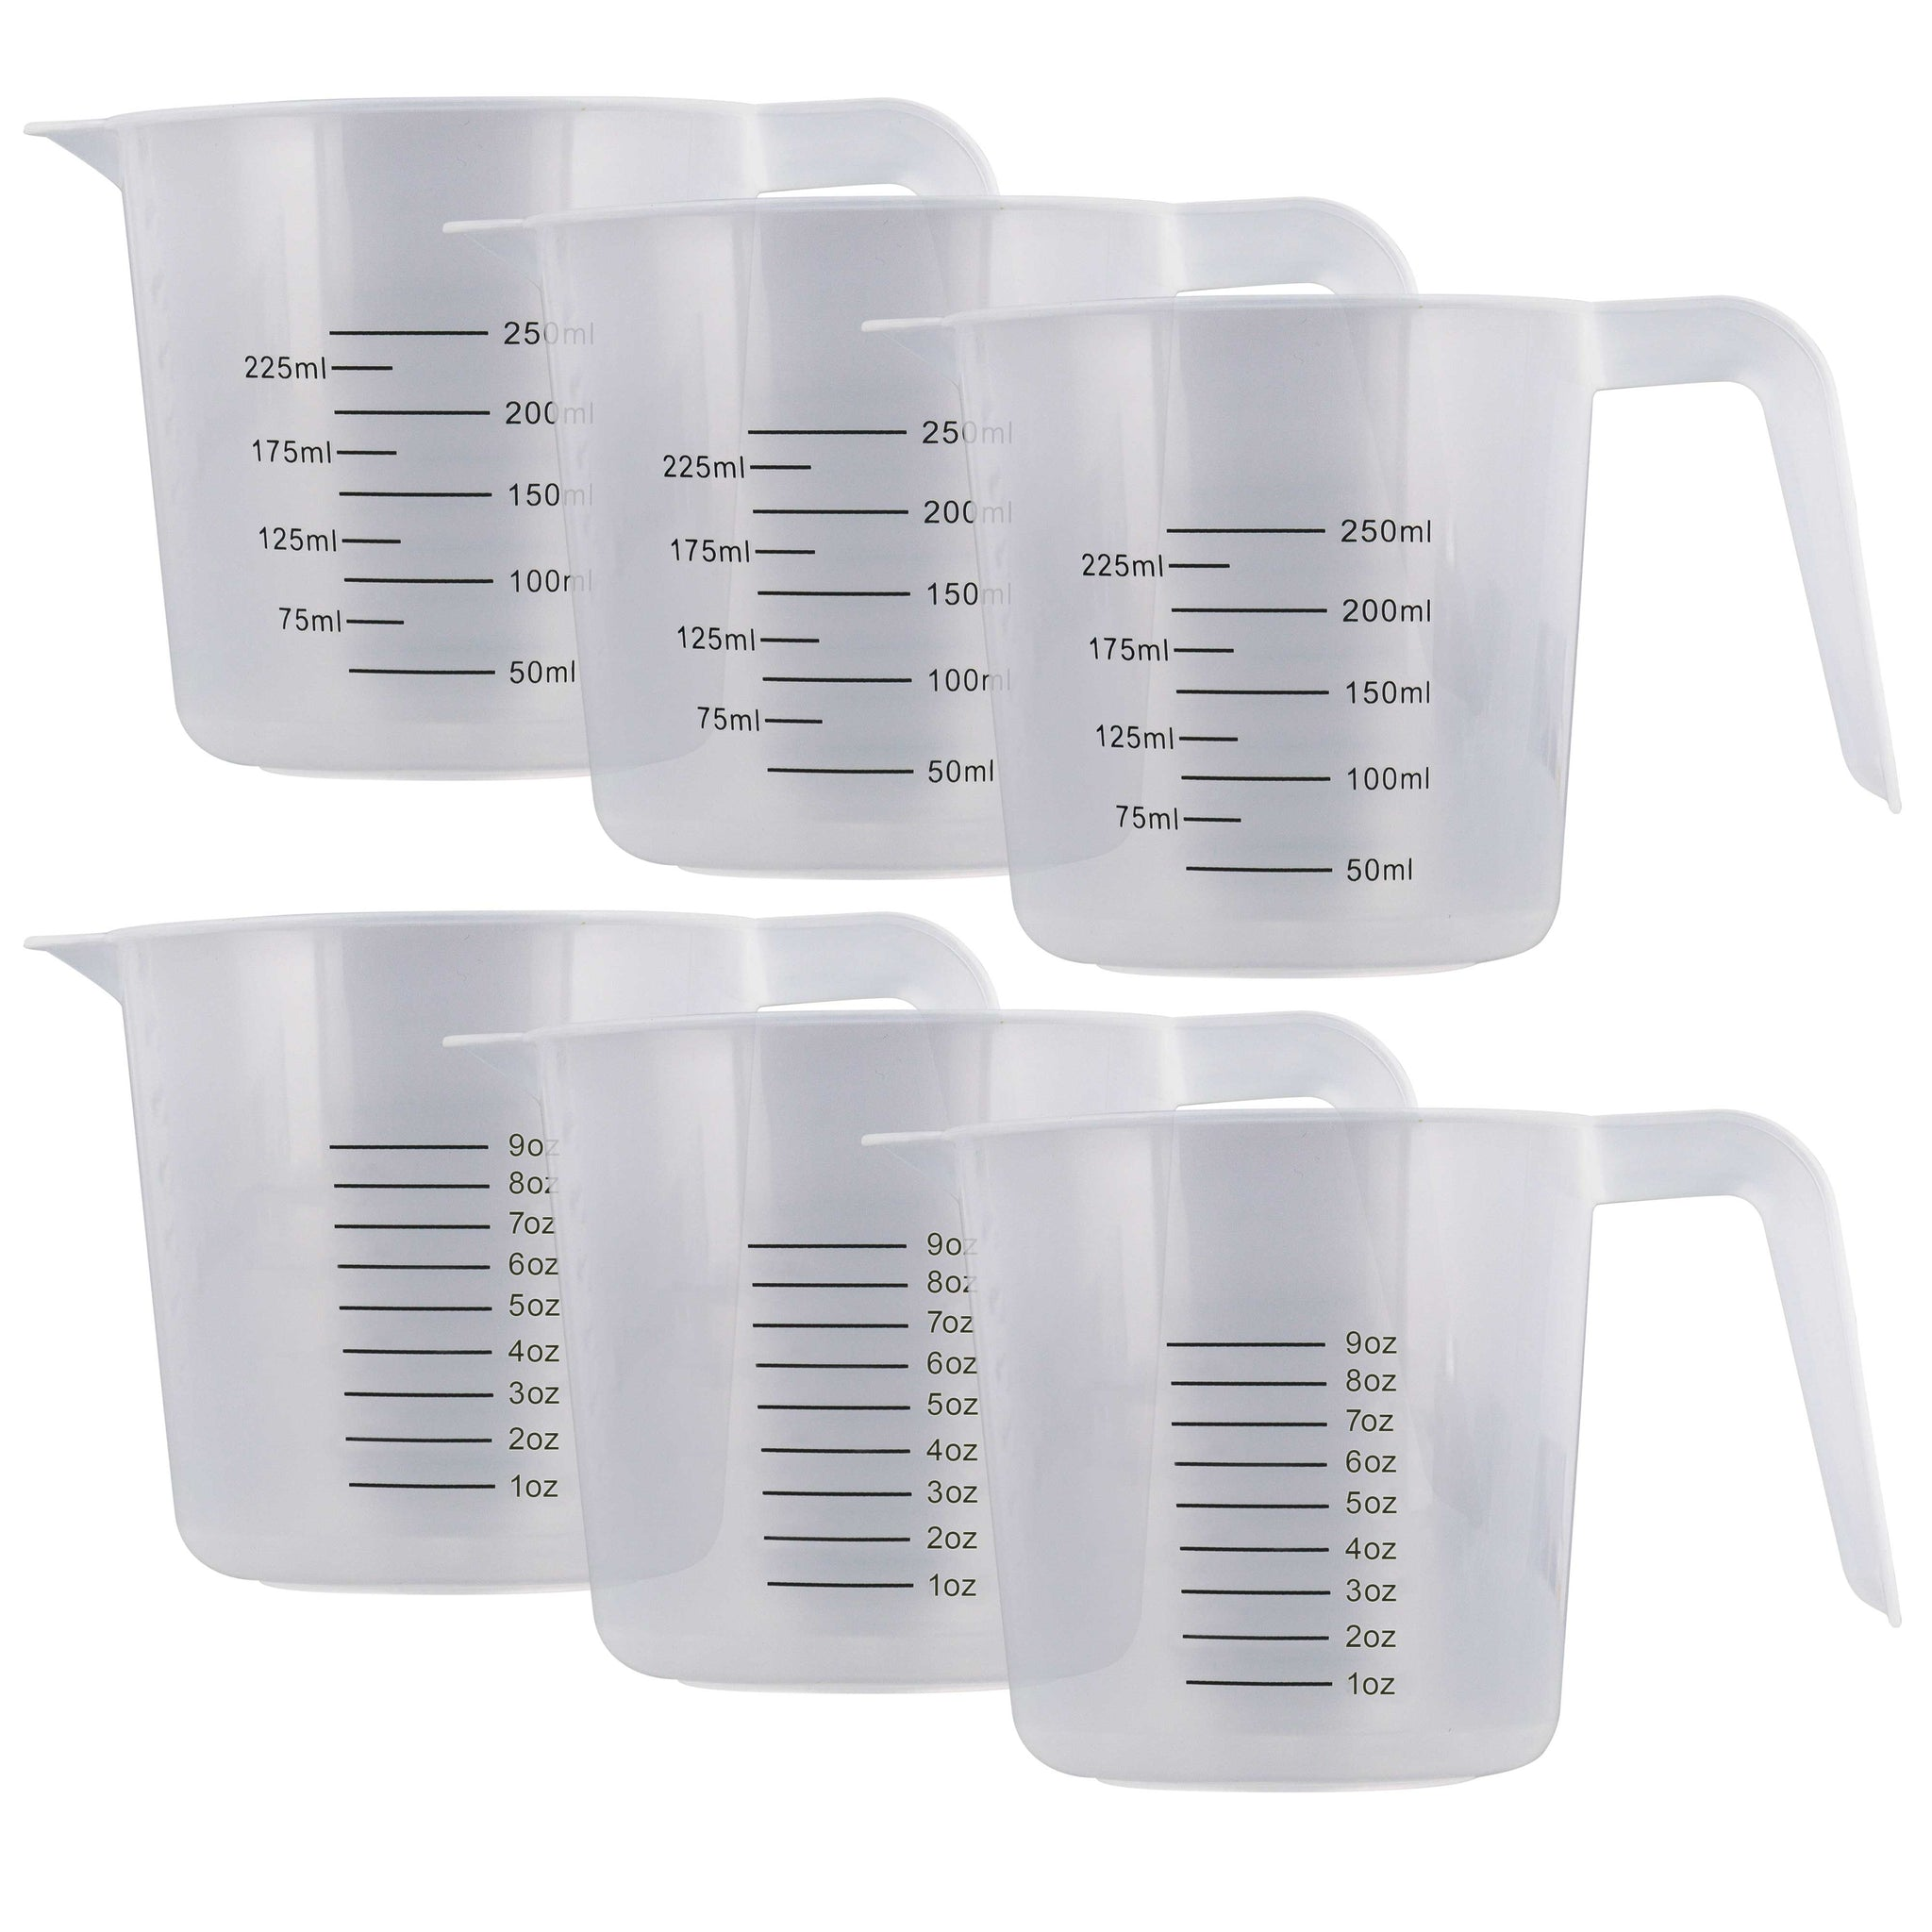 Measuring Cups Disposable Plastic Graduated Cooking Laboratory Mixing Glass 8 Oz